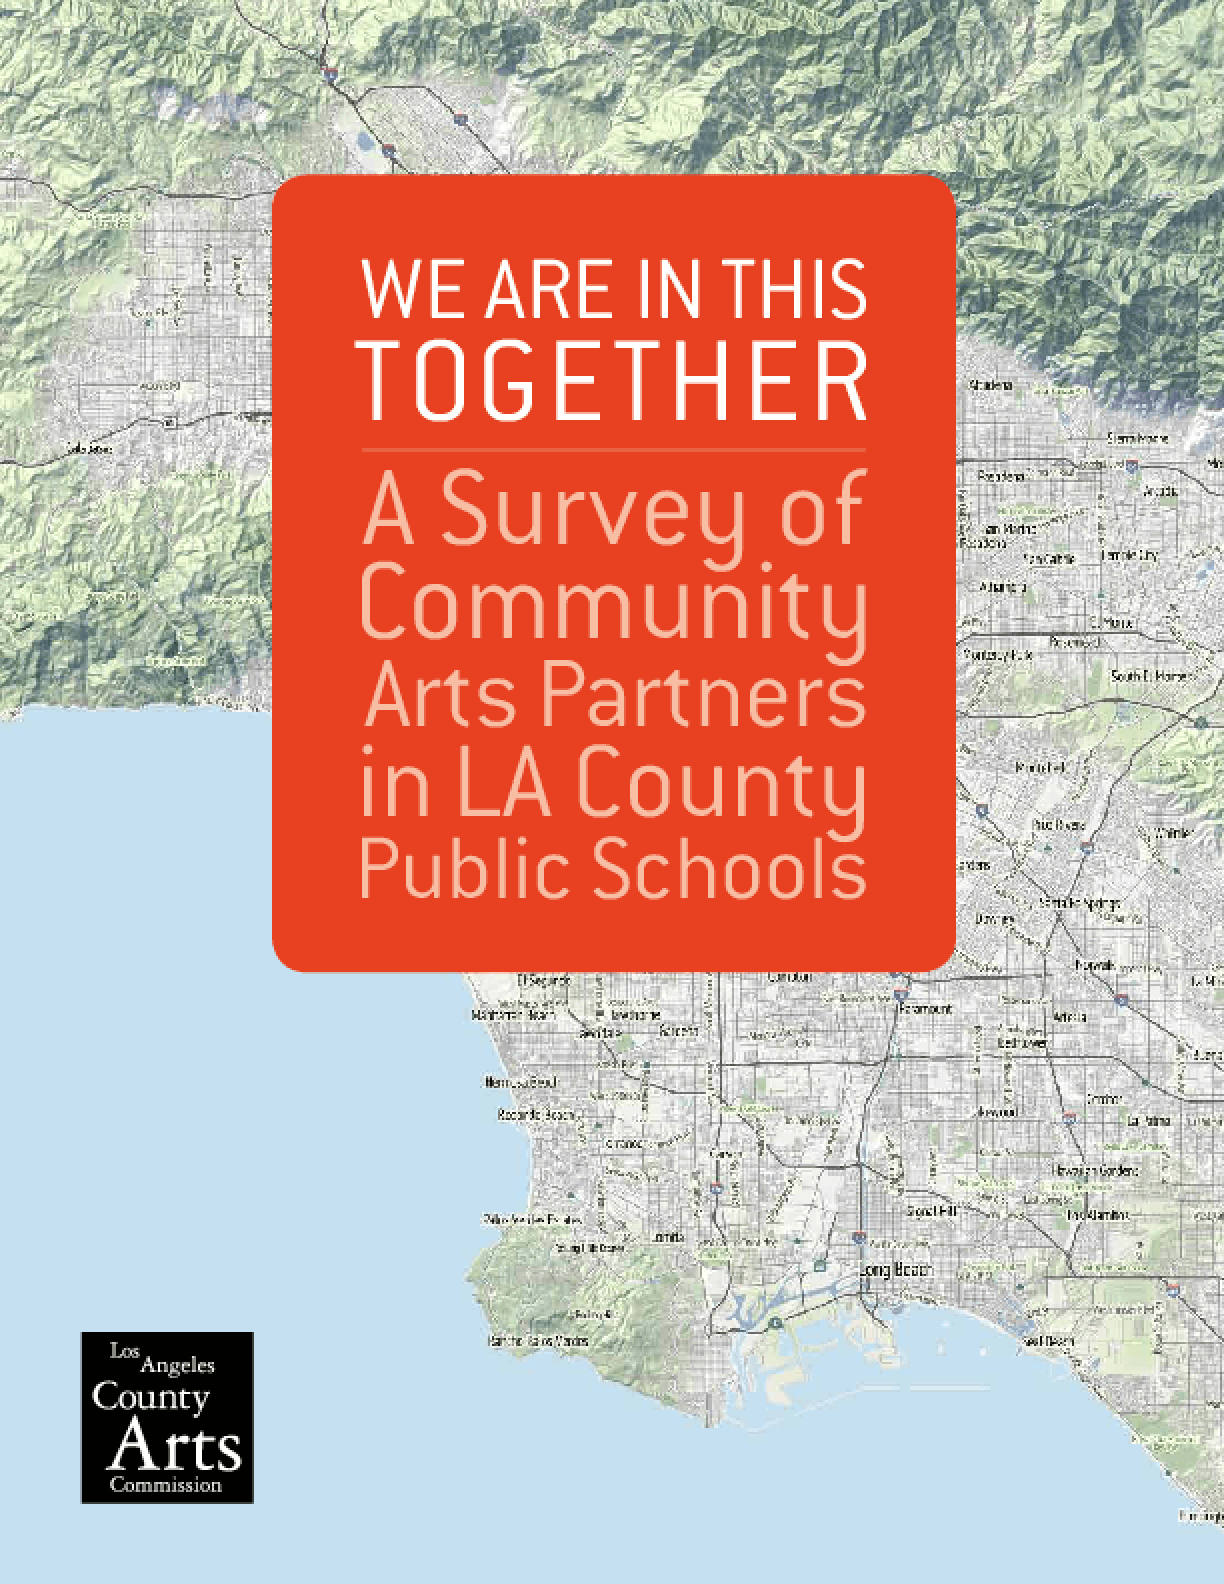 We Are in This Together: A Survey of Community Arts Partners in LA County Public Schools